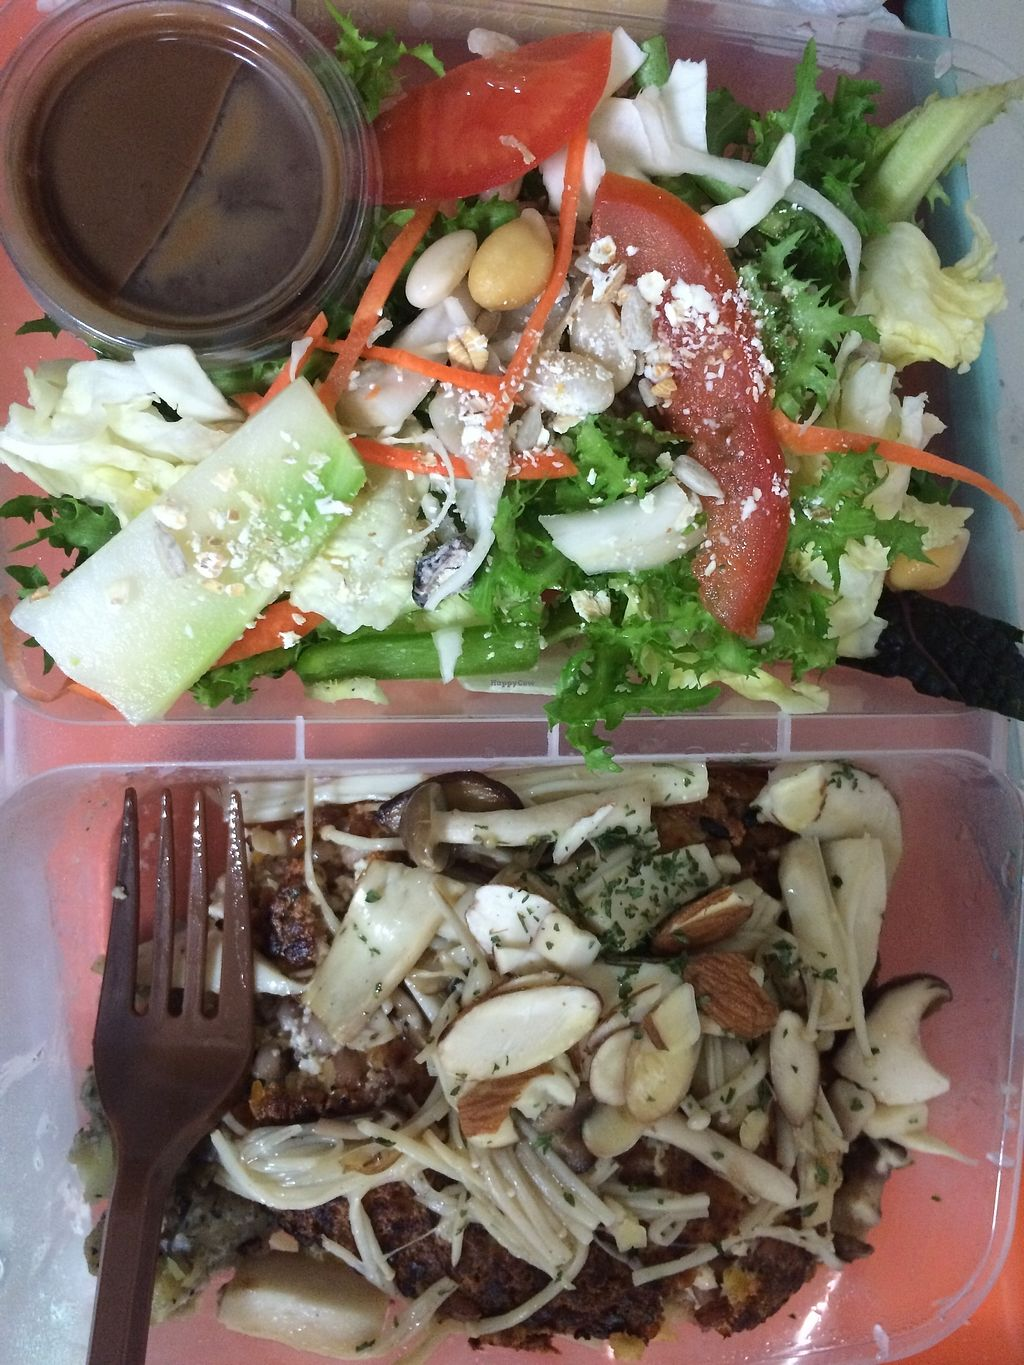 """Photo of Green Table - 초록식탁  by <a href=""""/members/profile/veglover89"""">veglover89</a> <br/>This time they put many yummy mushrooms on top of my burger! :) <br/> November 13, 2017  - <a href='/contact/abuse/image/103478/325087'>Report</a>"""